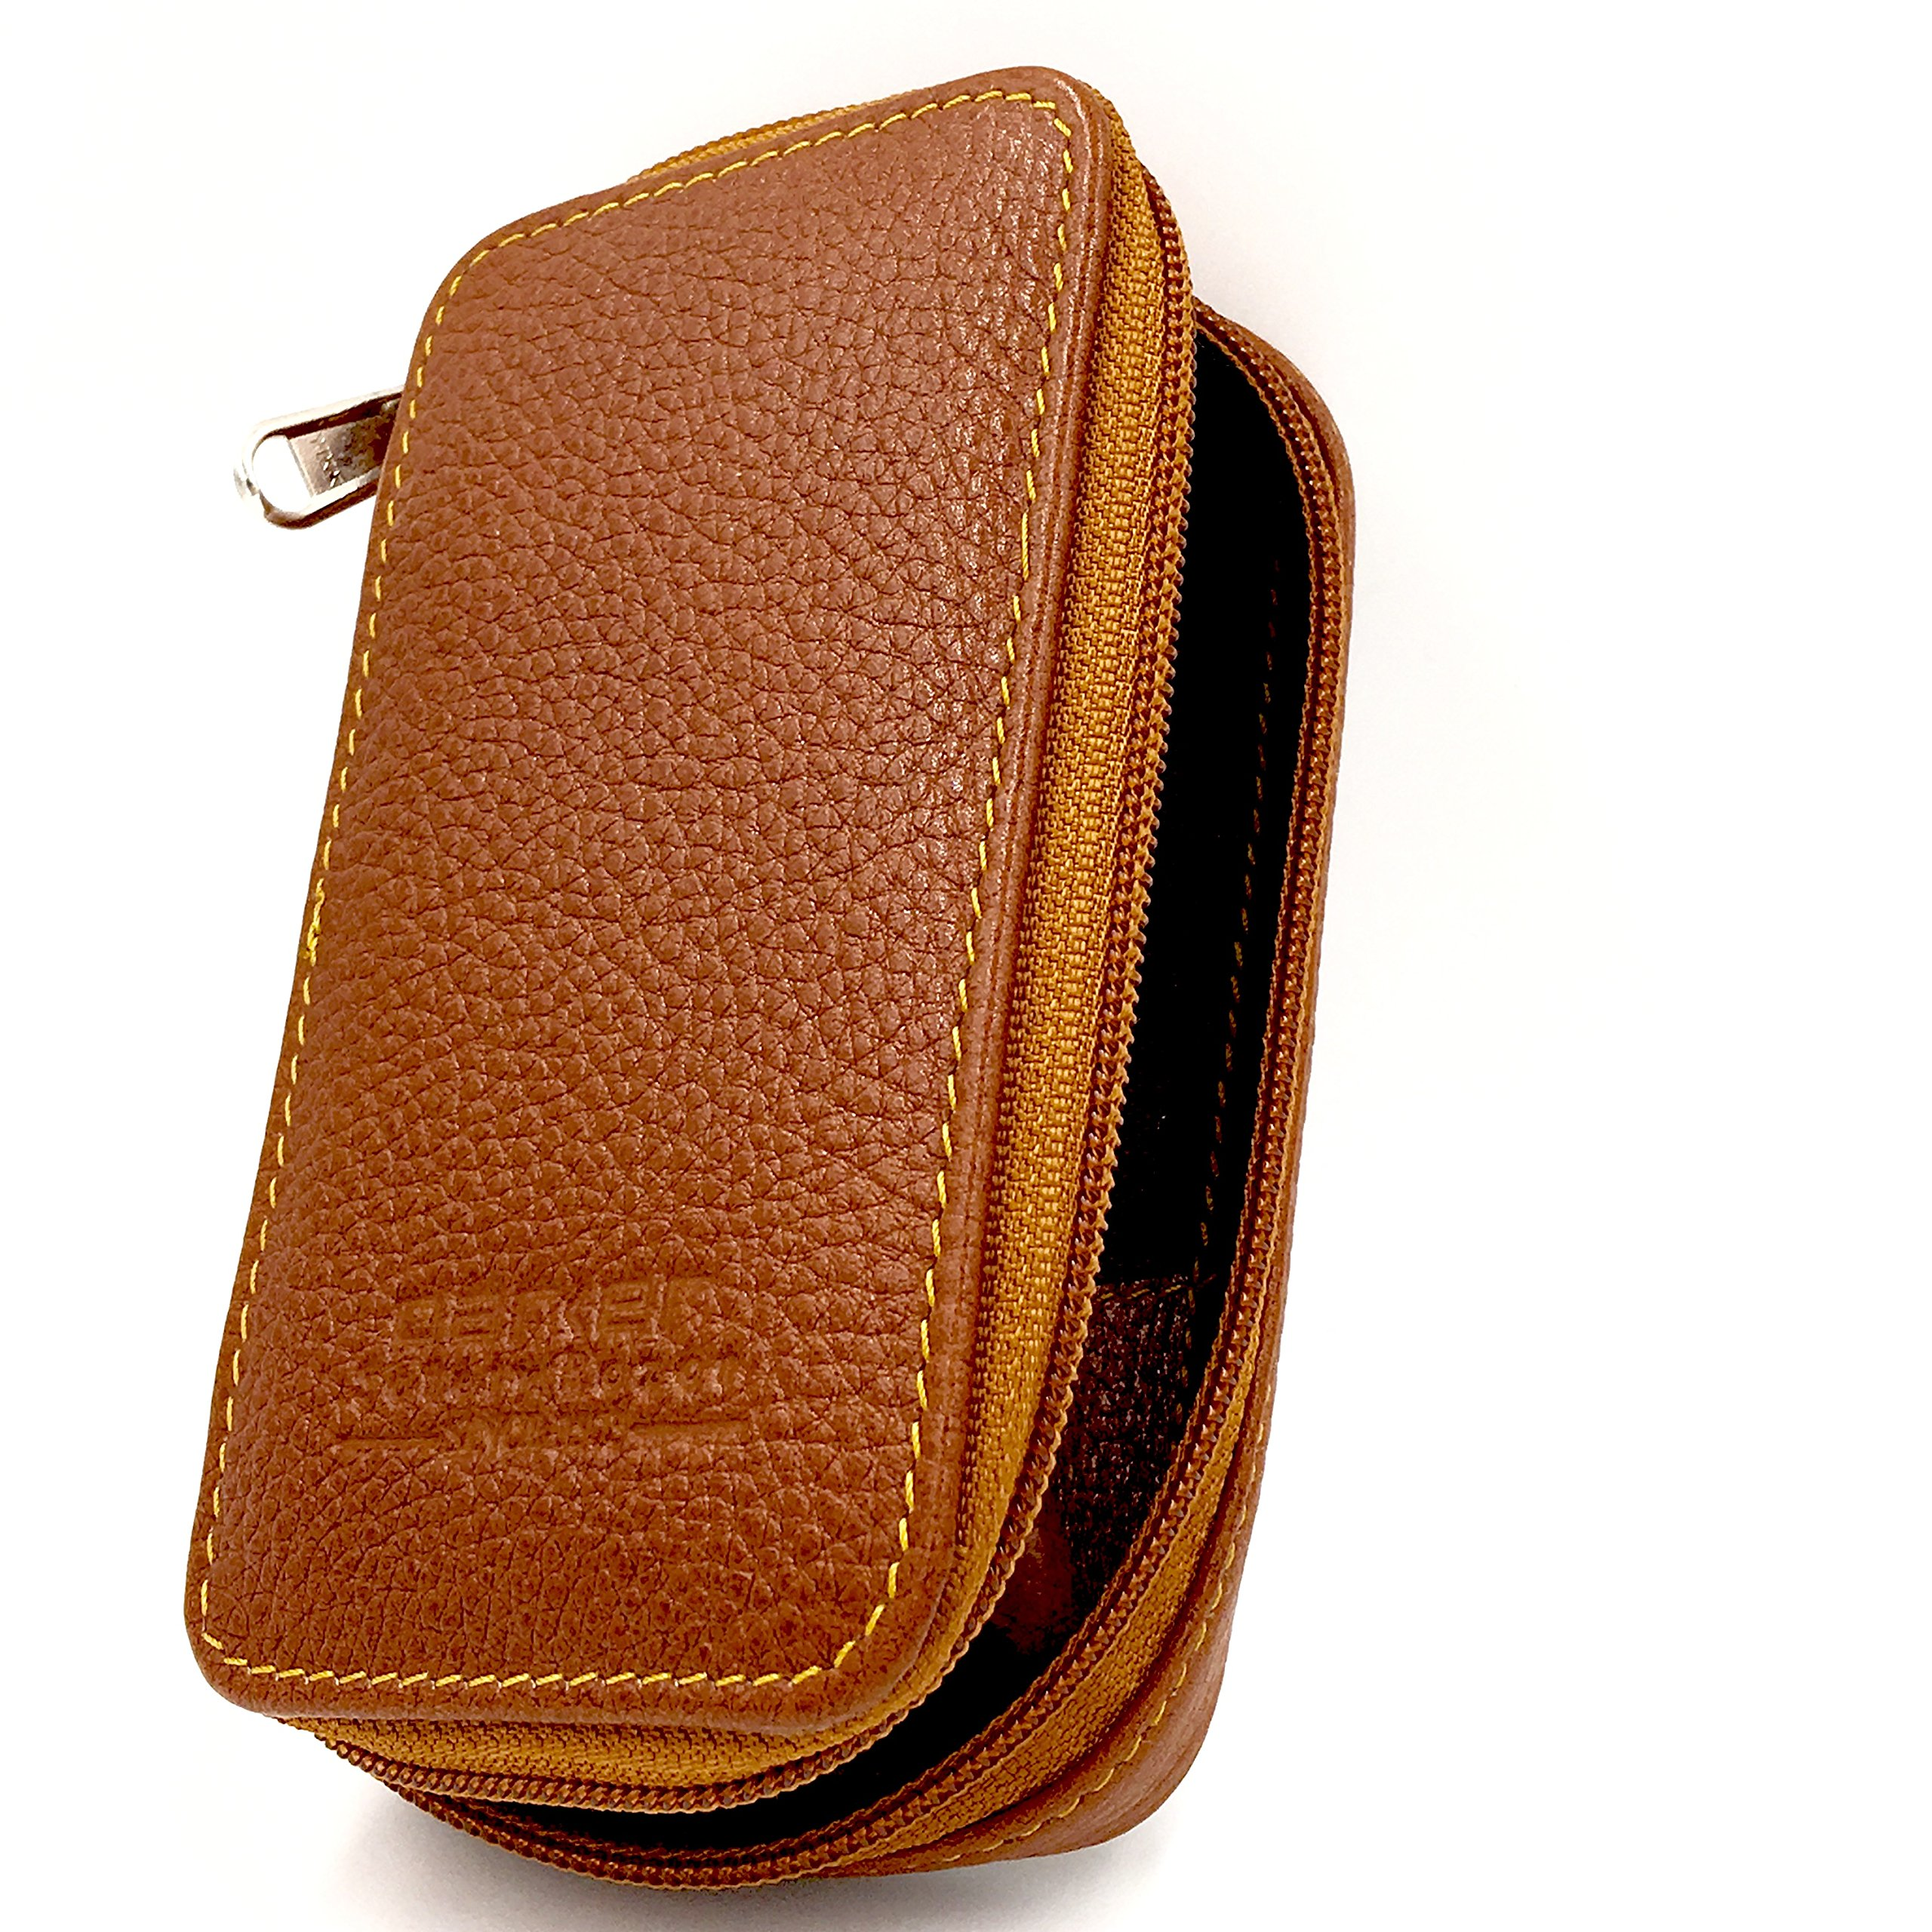 Genuine Leather Double Edge Safety Razor Zippered Travel Case with Compartment for Blades too --- from Parker Safety Razor SADDLE BROWN